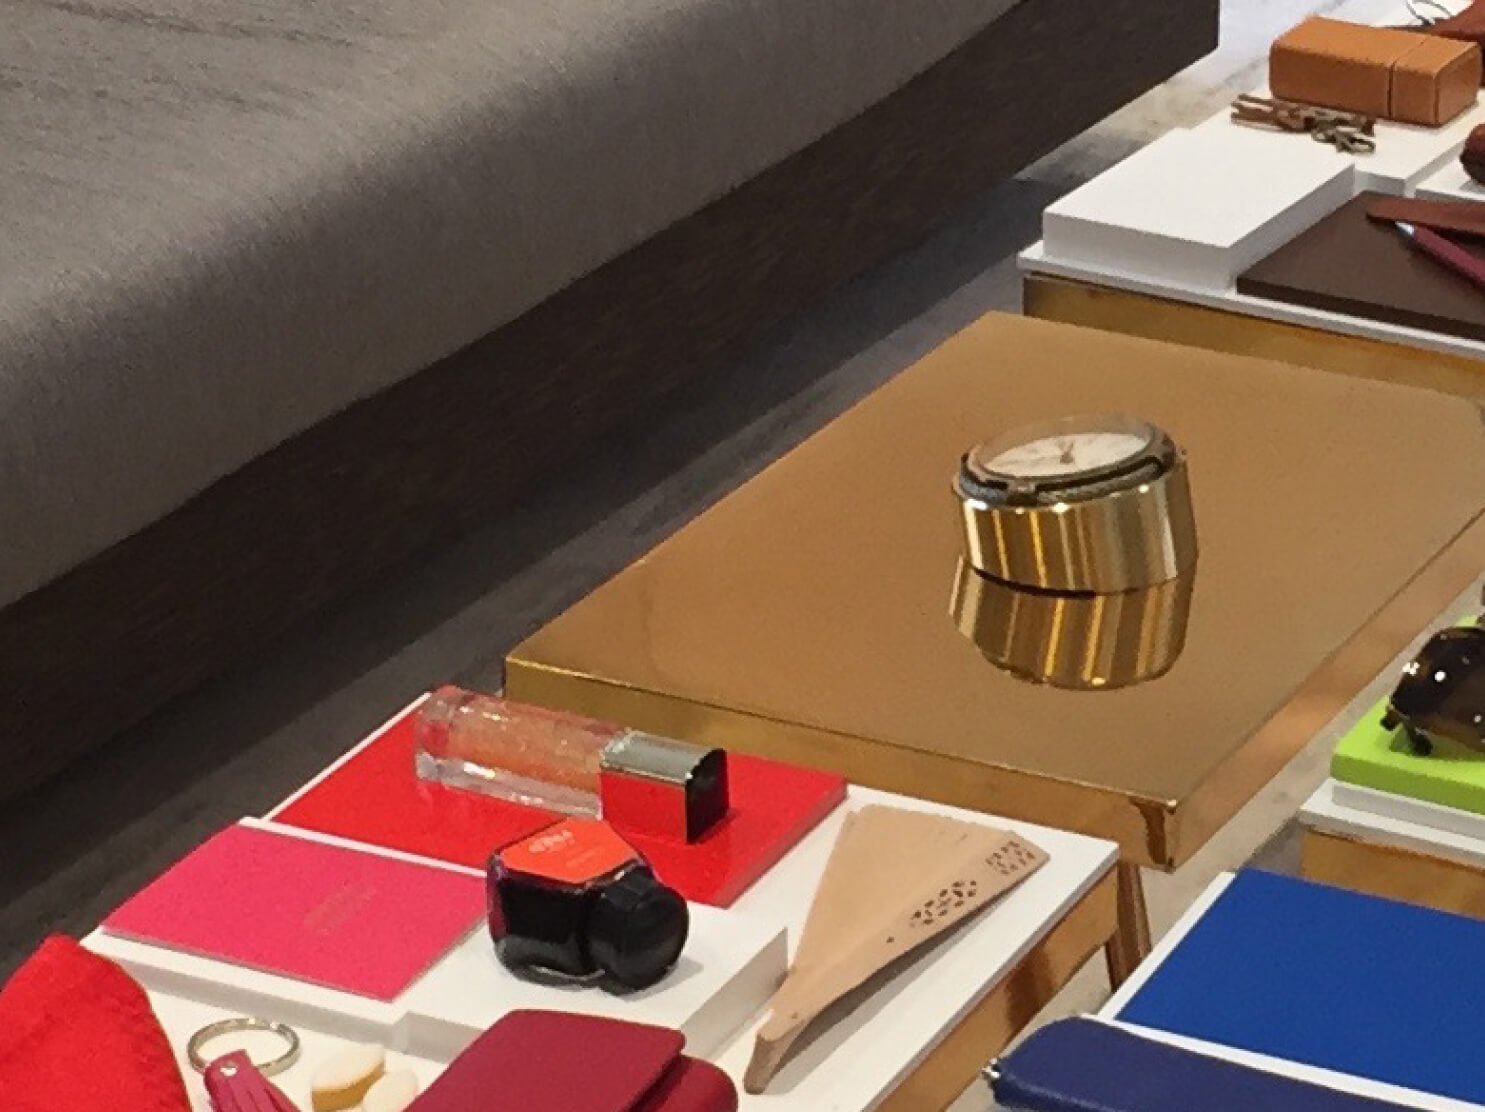 11-Fred-event-support-display-vitrine-retail-joaillerie-luxe-window-okto-PP